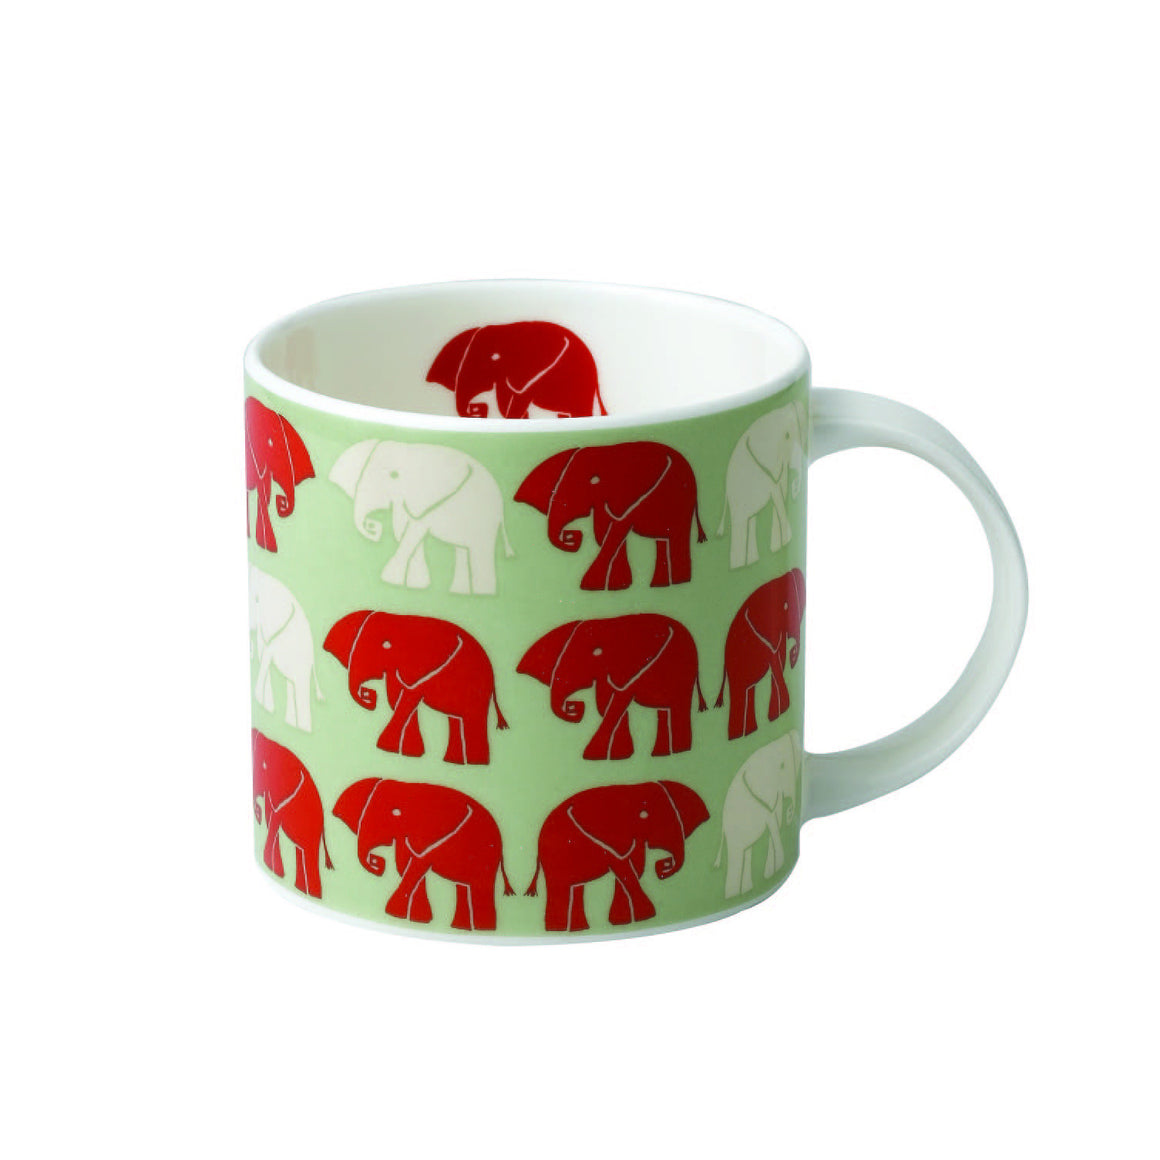 Aurina Lambert fine bone china elephant mug